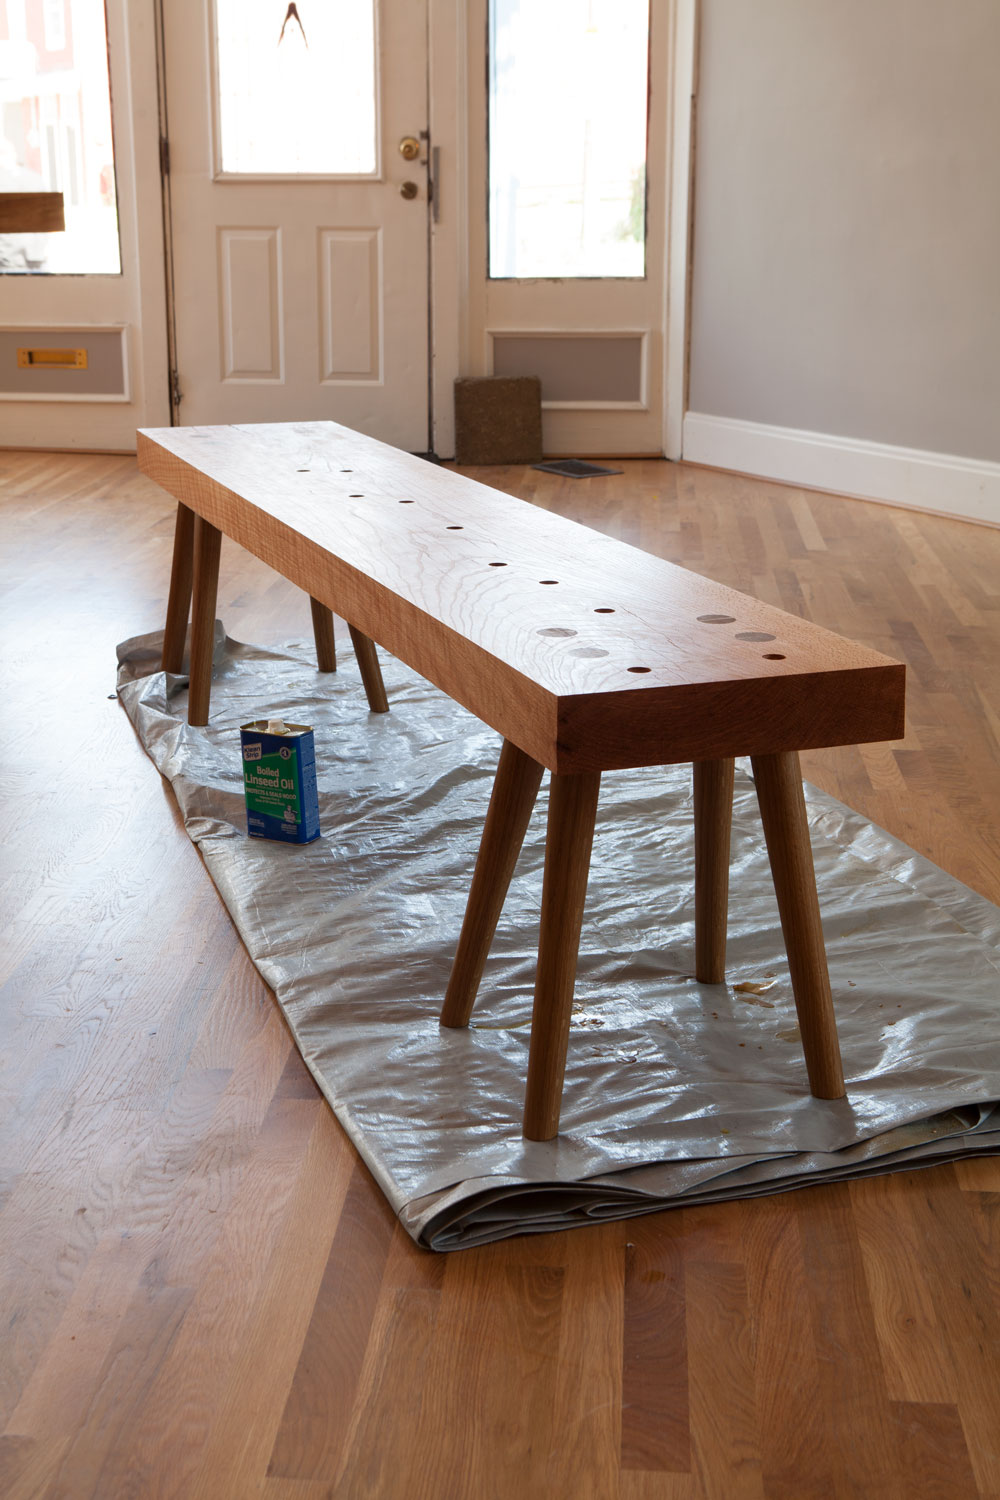 Excellent Workbenches From Woodworking In Estonia